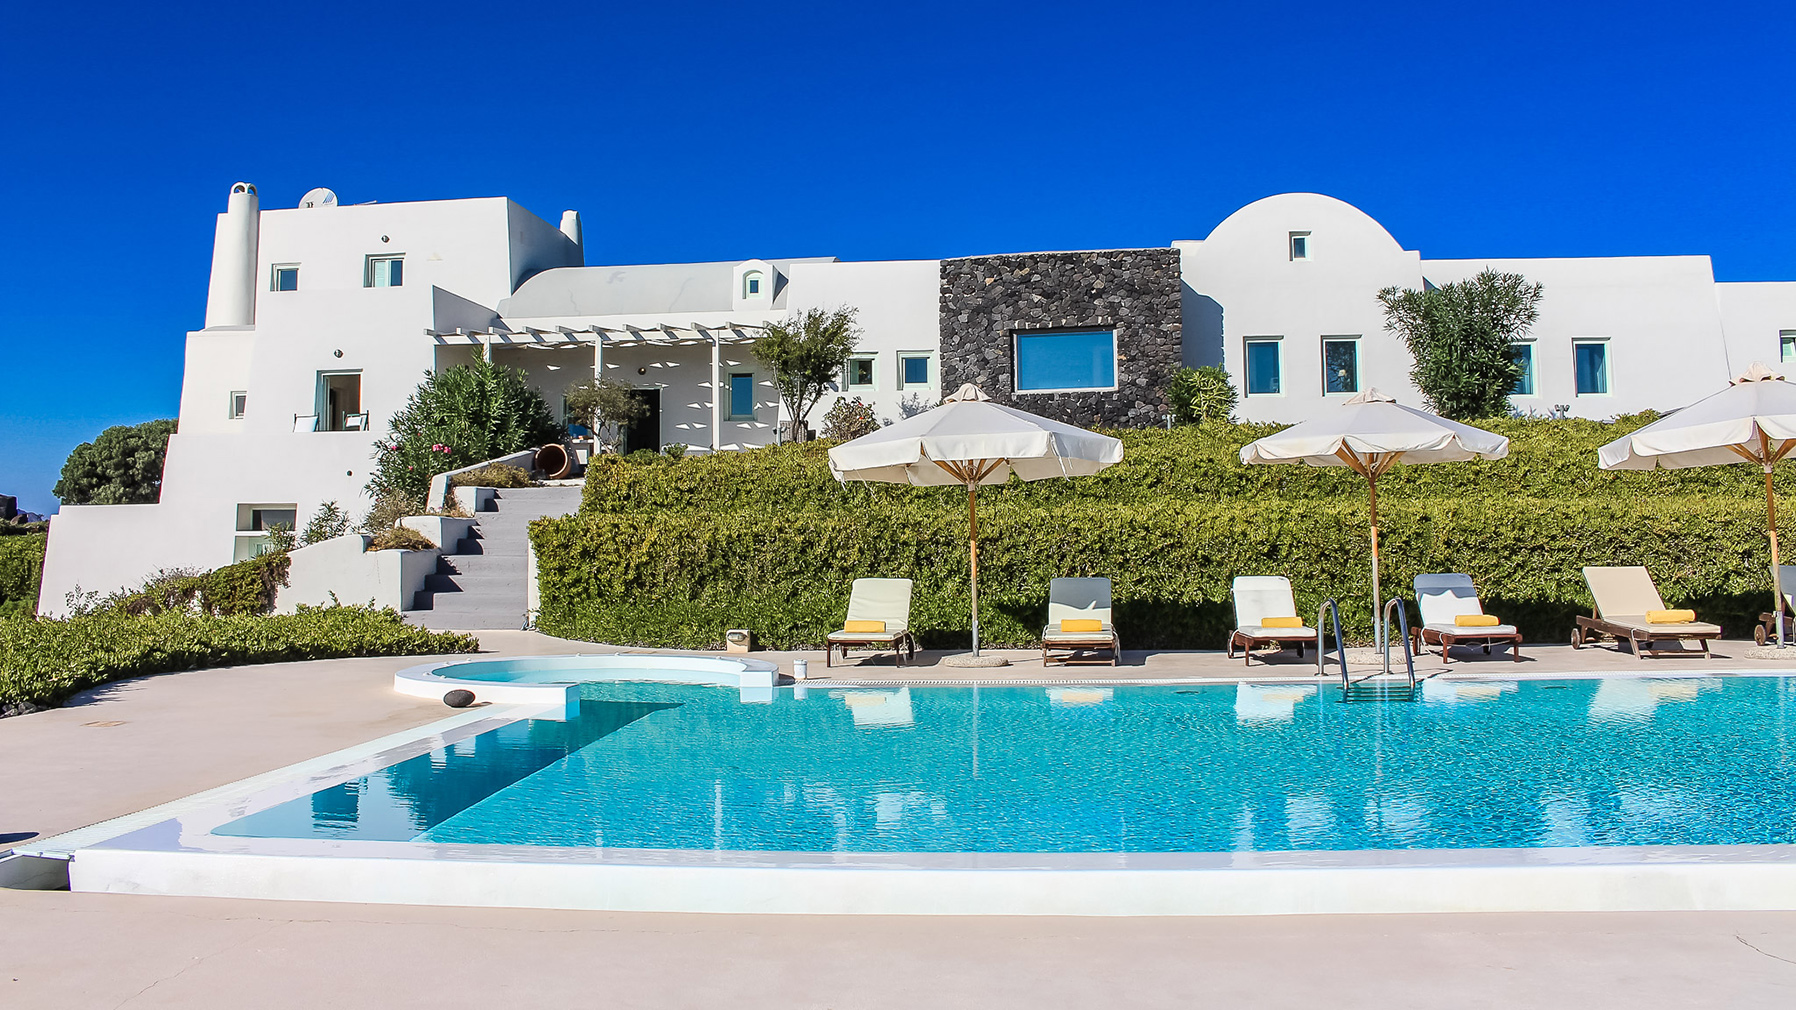 Santorini Black Rock Recording Studio and holiday villa